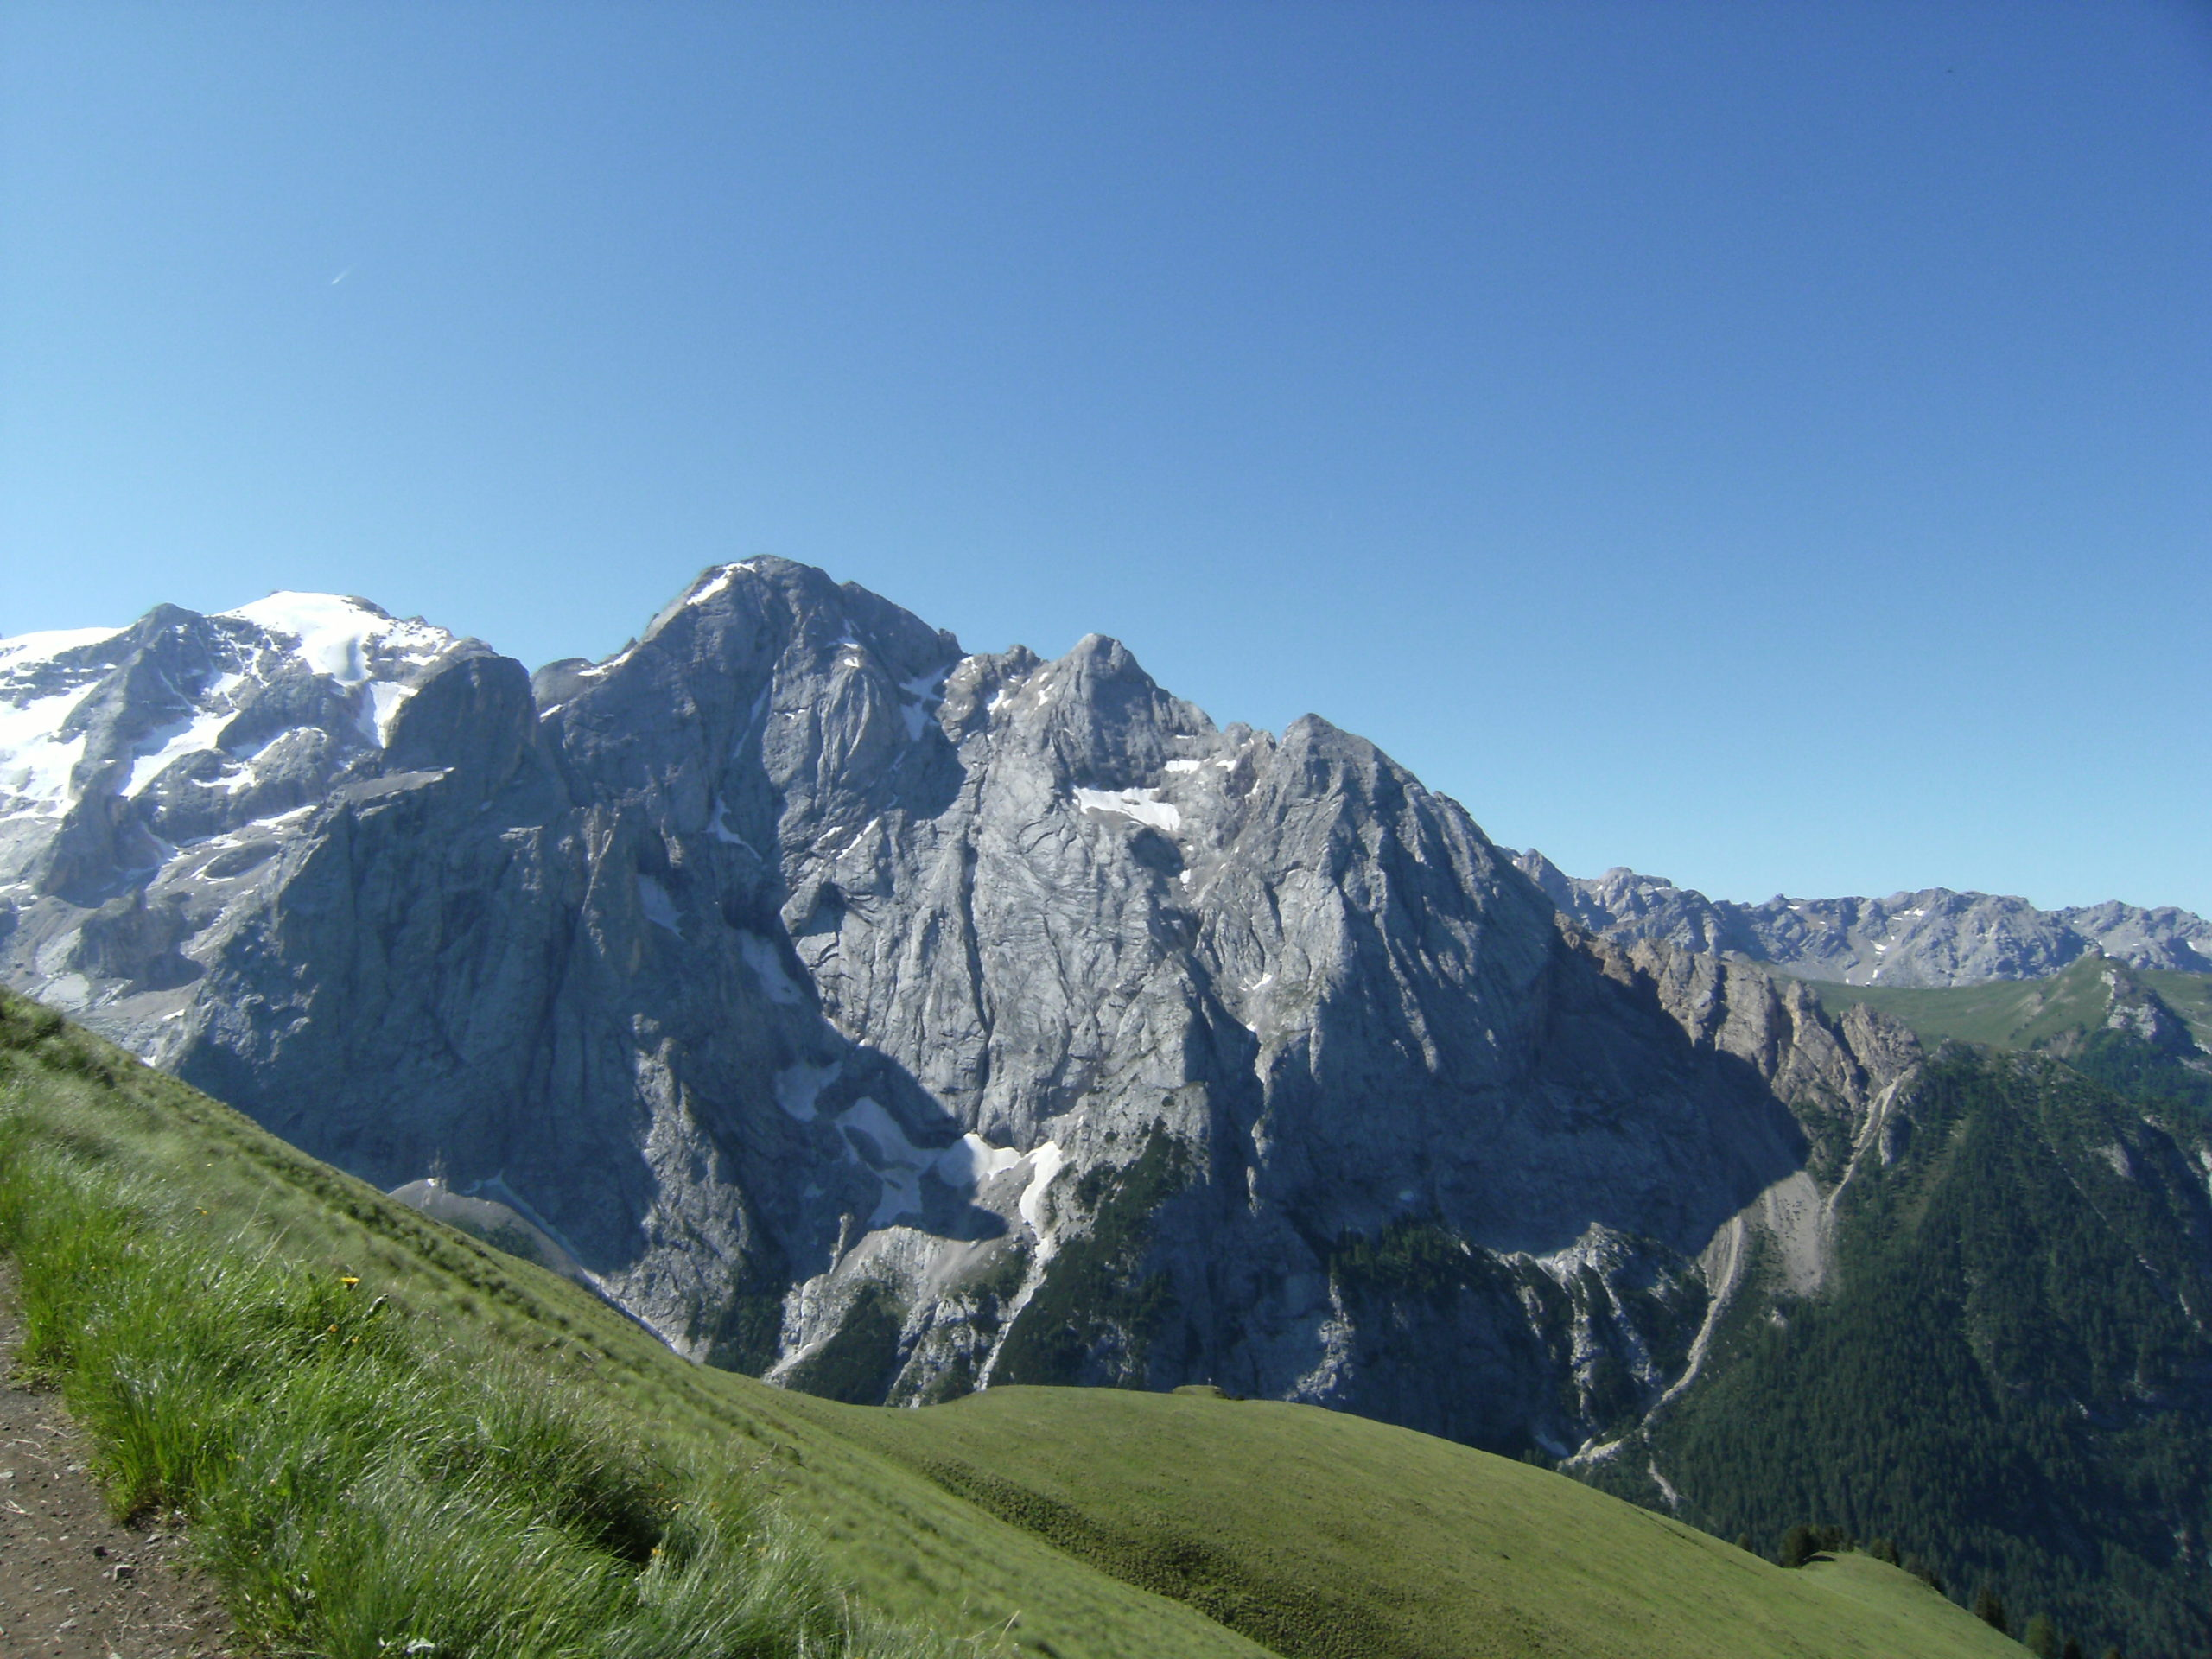 Dolomite Alps and South Tyrol